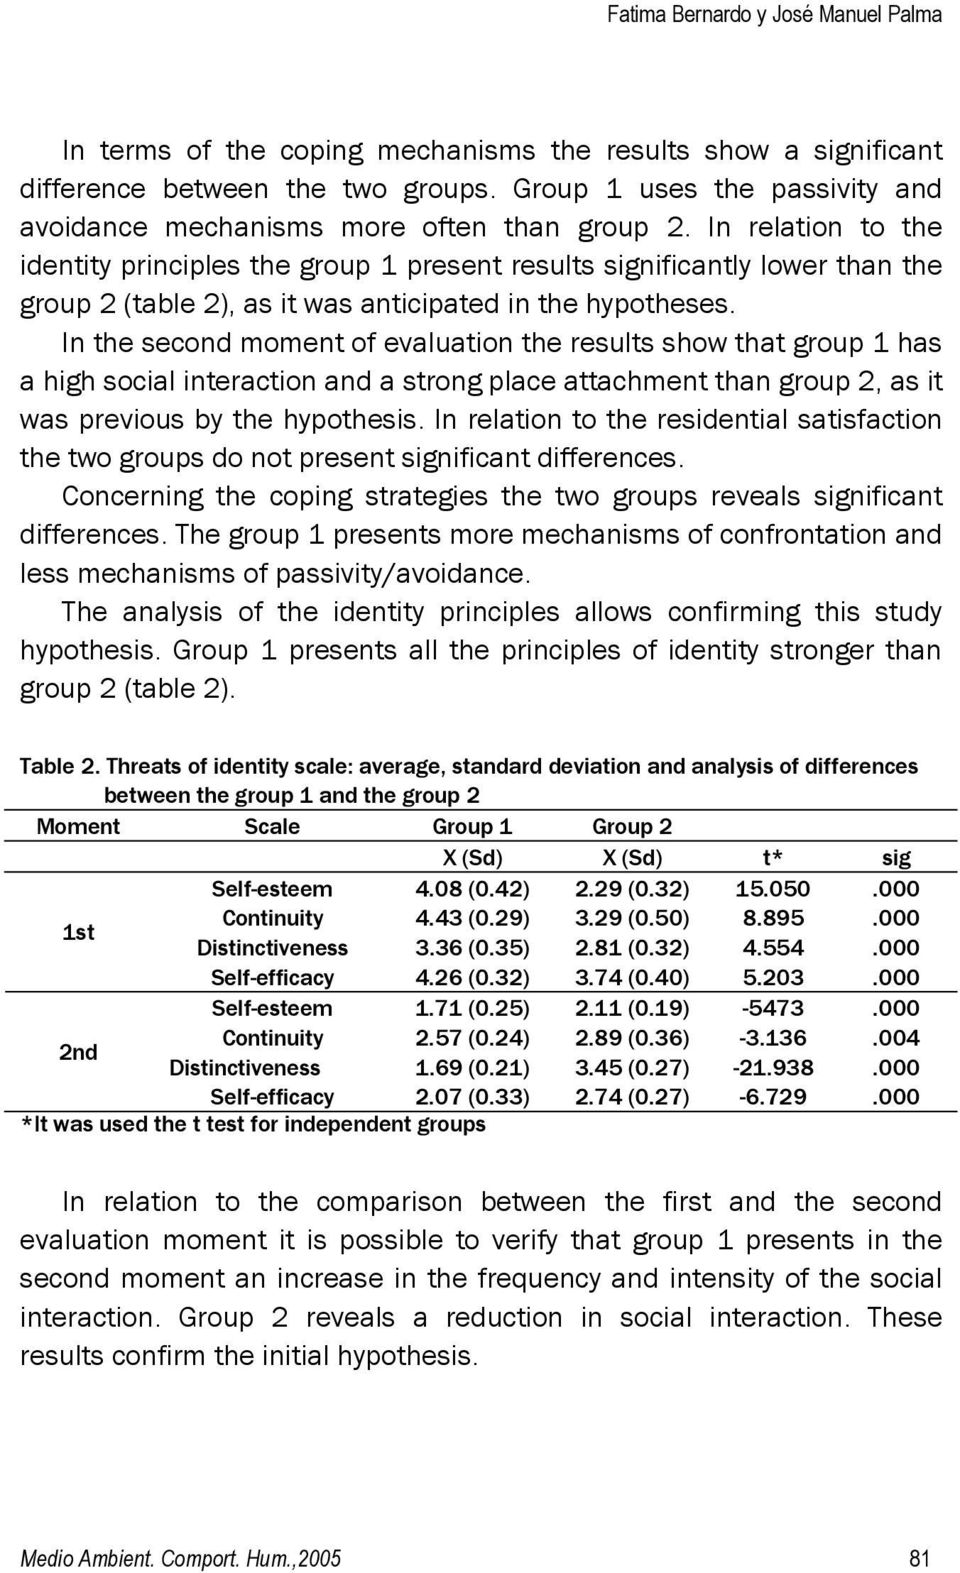 In relation to the identity principles the group 1 present results significantly lower than the group 2 (table 2), as it was anticipated in the hypotheses.